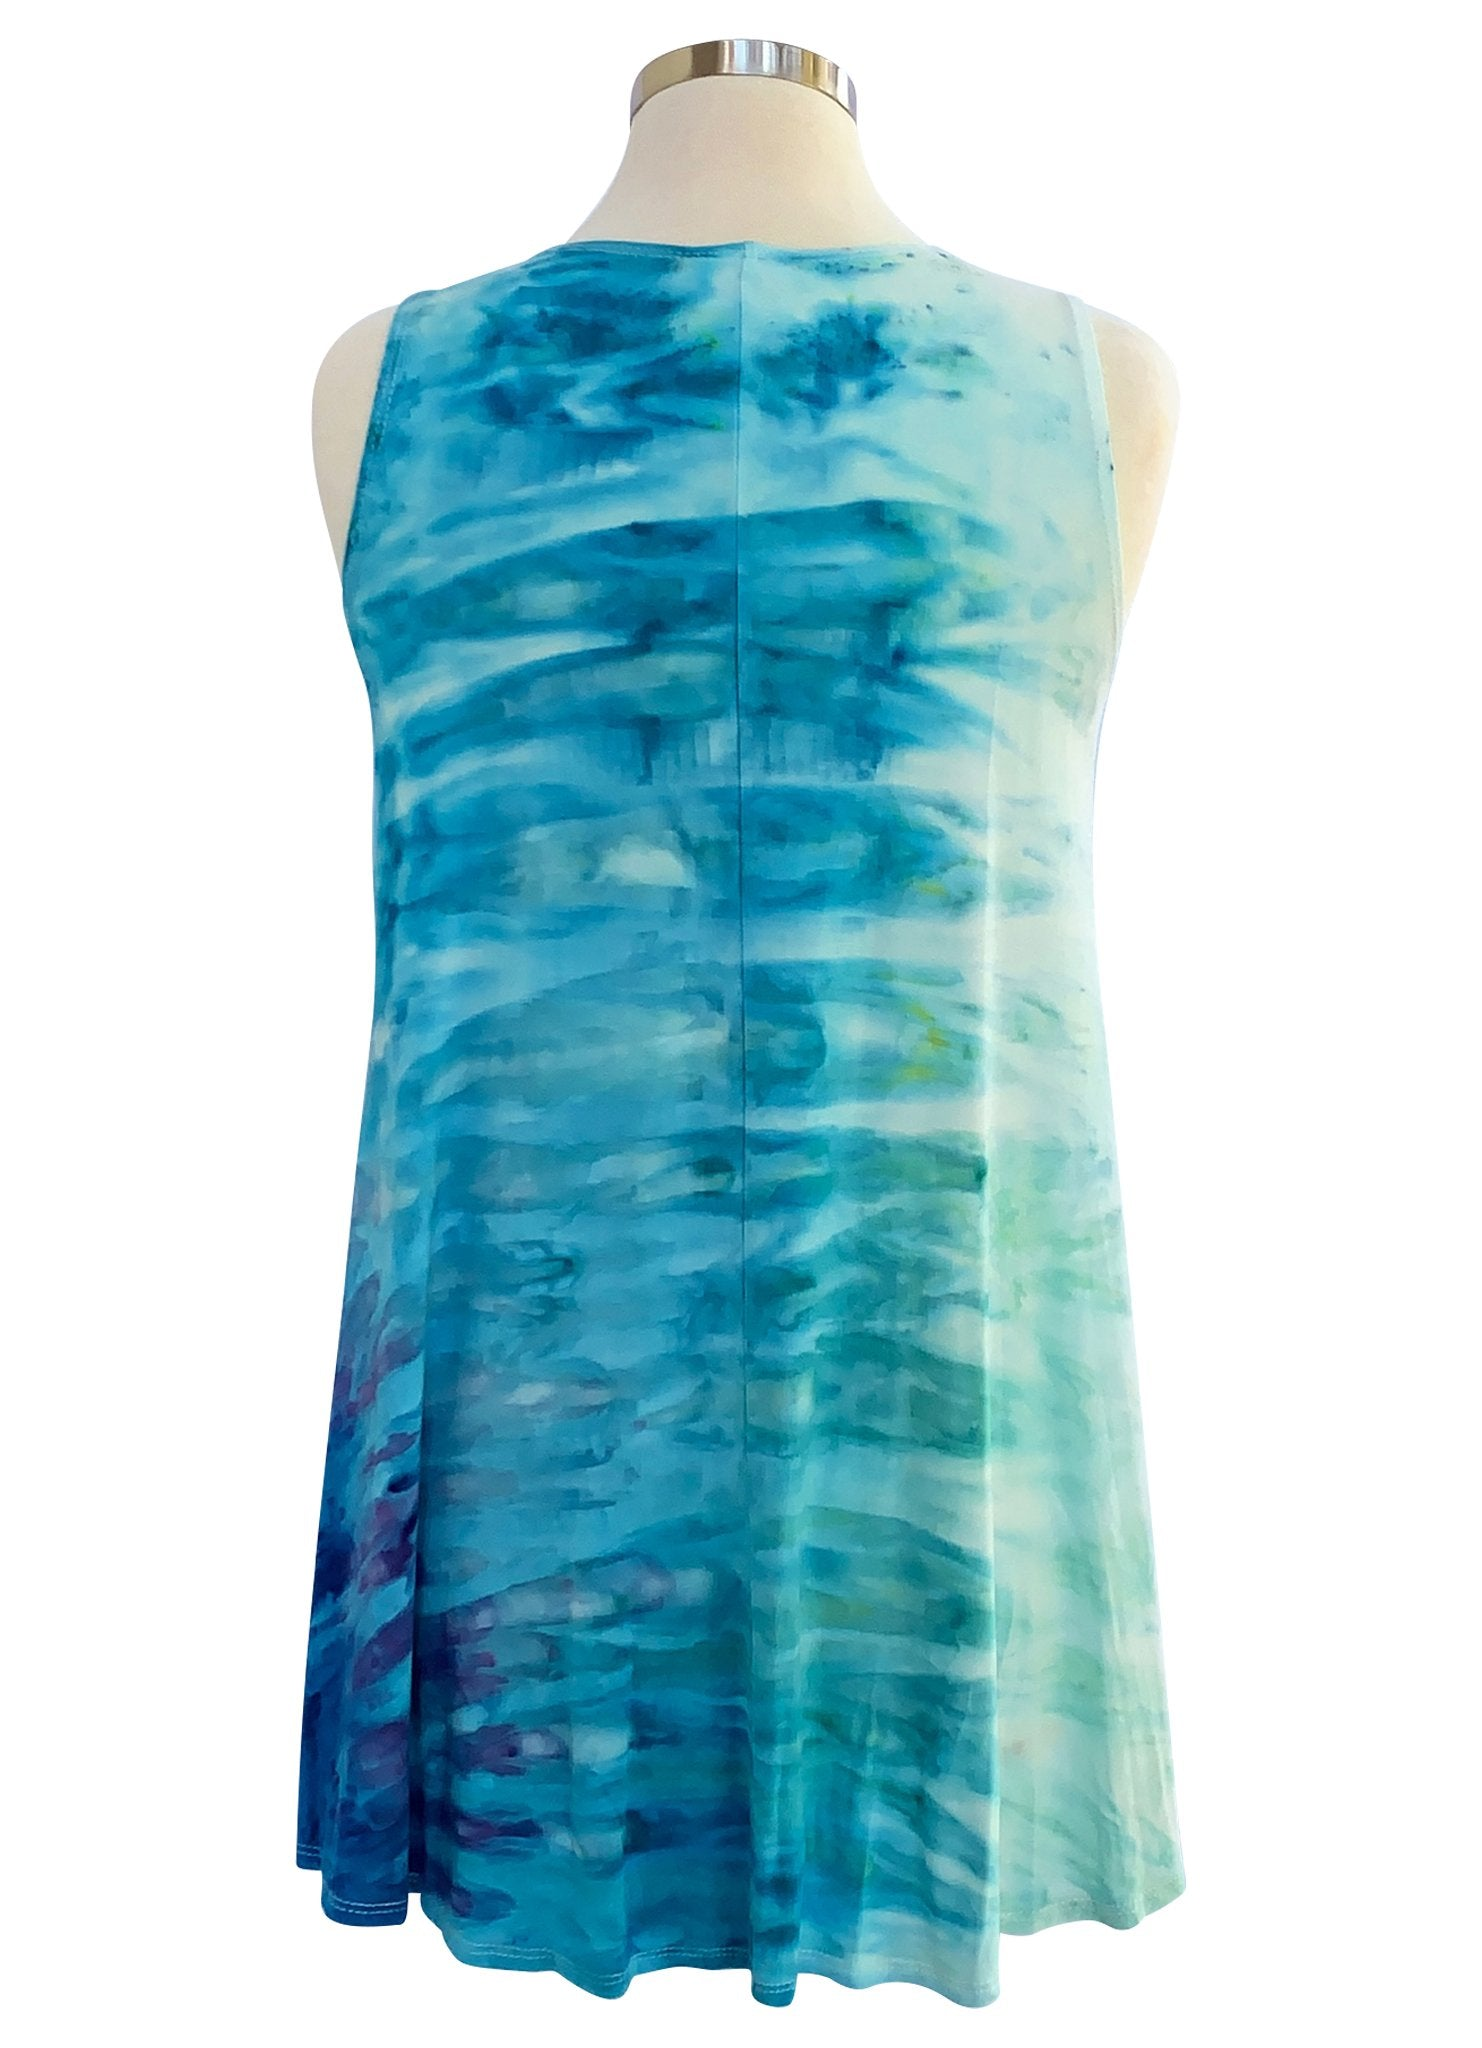 A-Line Tunic Tank in Bahama Mama - Top - Dyetology